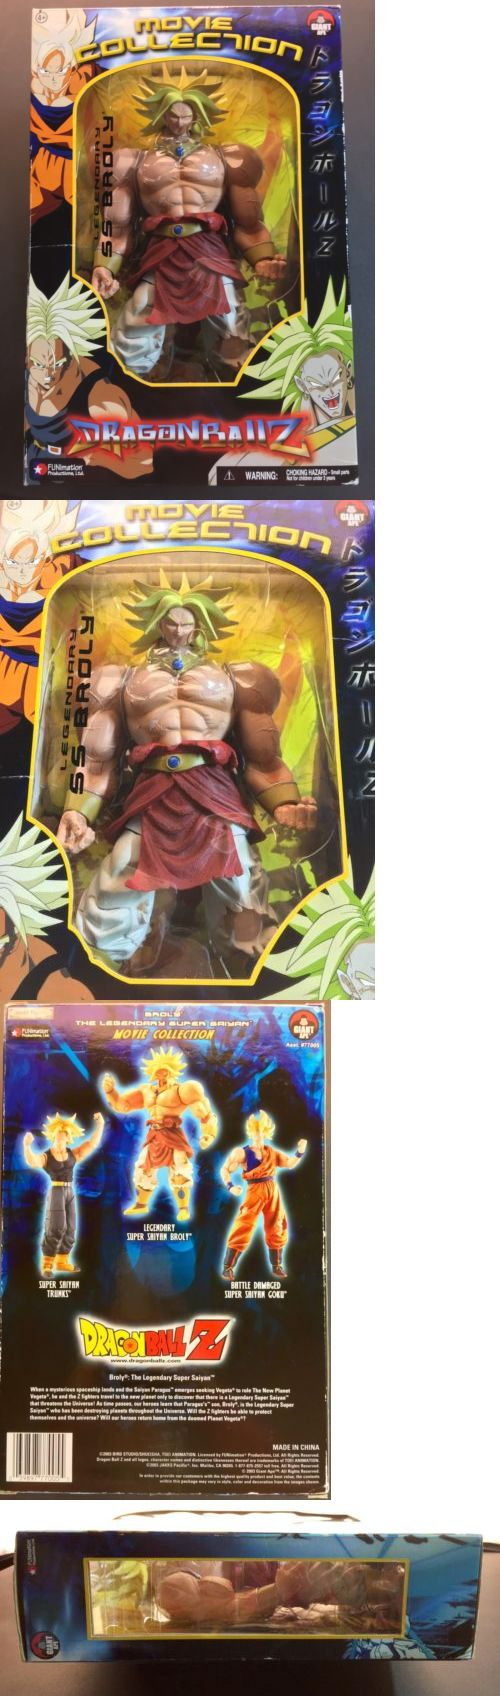 DragonBall Z 7117: Dragonball Z Movie Collection Legendary Ss Broly Super Saiyan Broly Figure New -> BUY IT NOW ONLY: $119 on eBay!